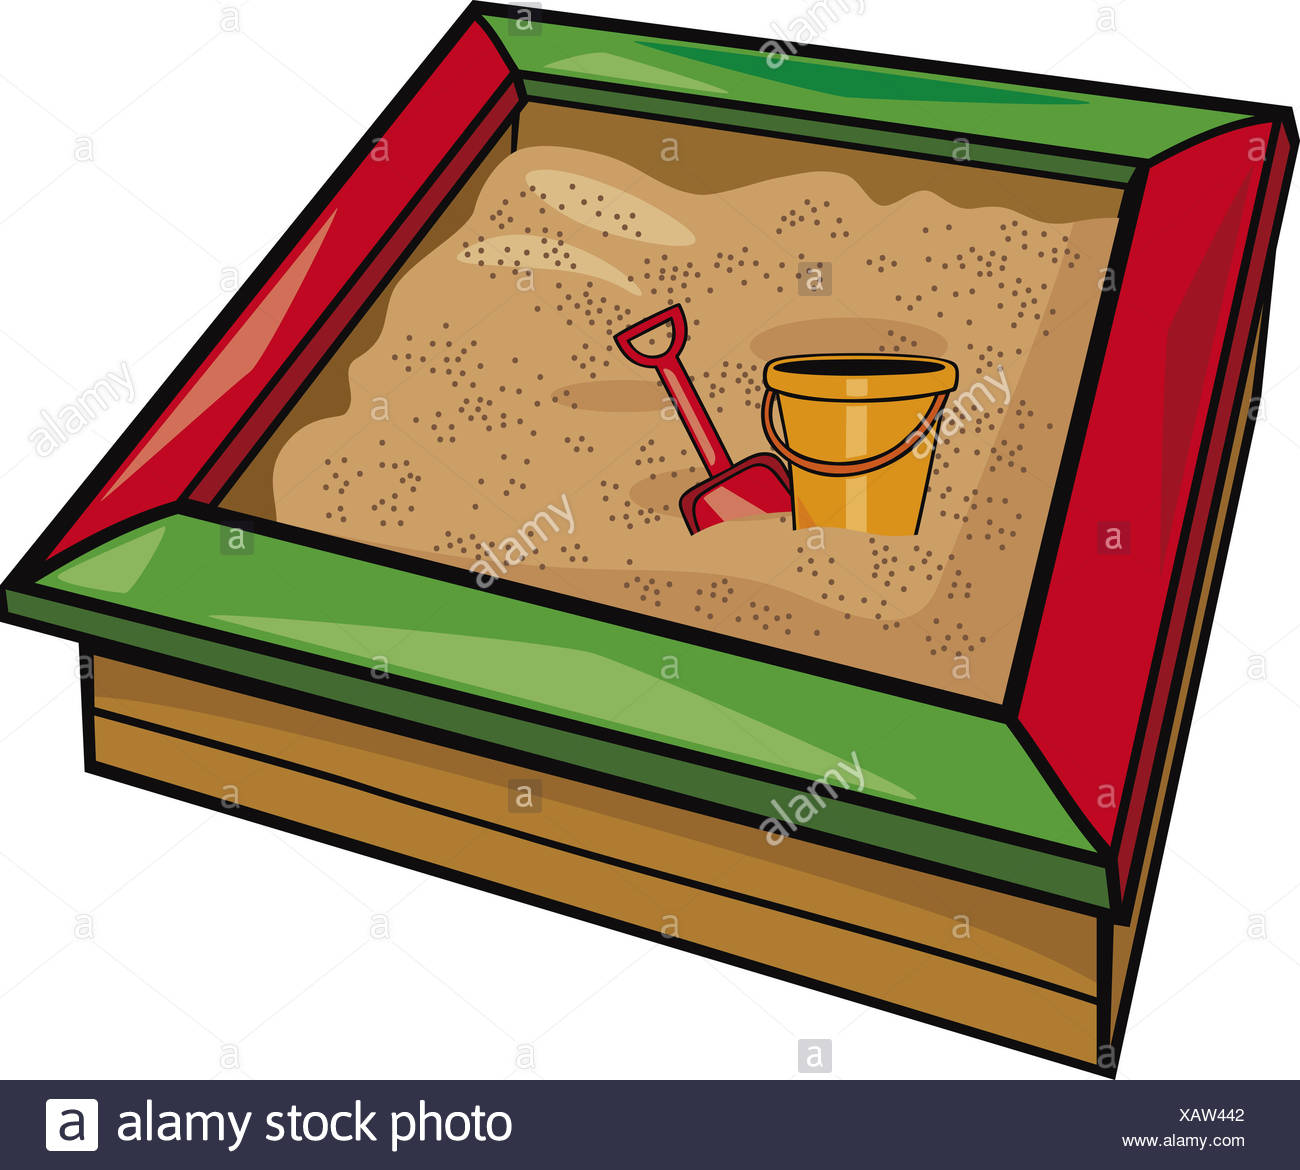 Spielzeug Sandkasten Illustration Shovel Toys Sandbox Cartoon Stockfotos